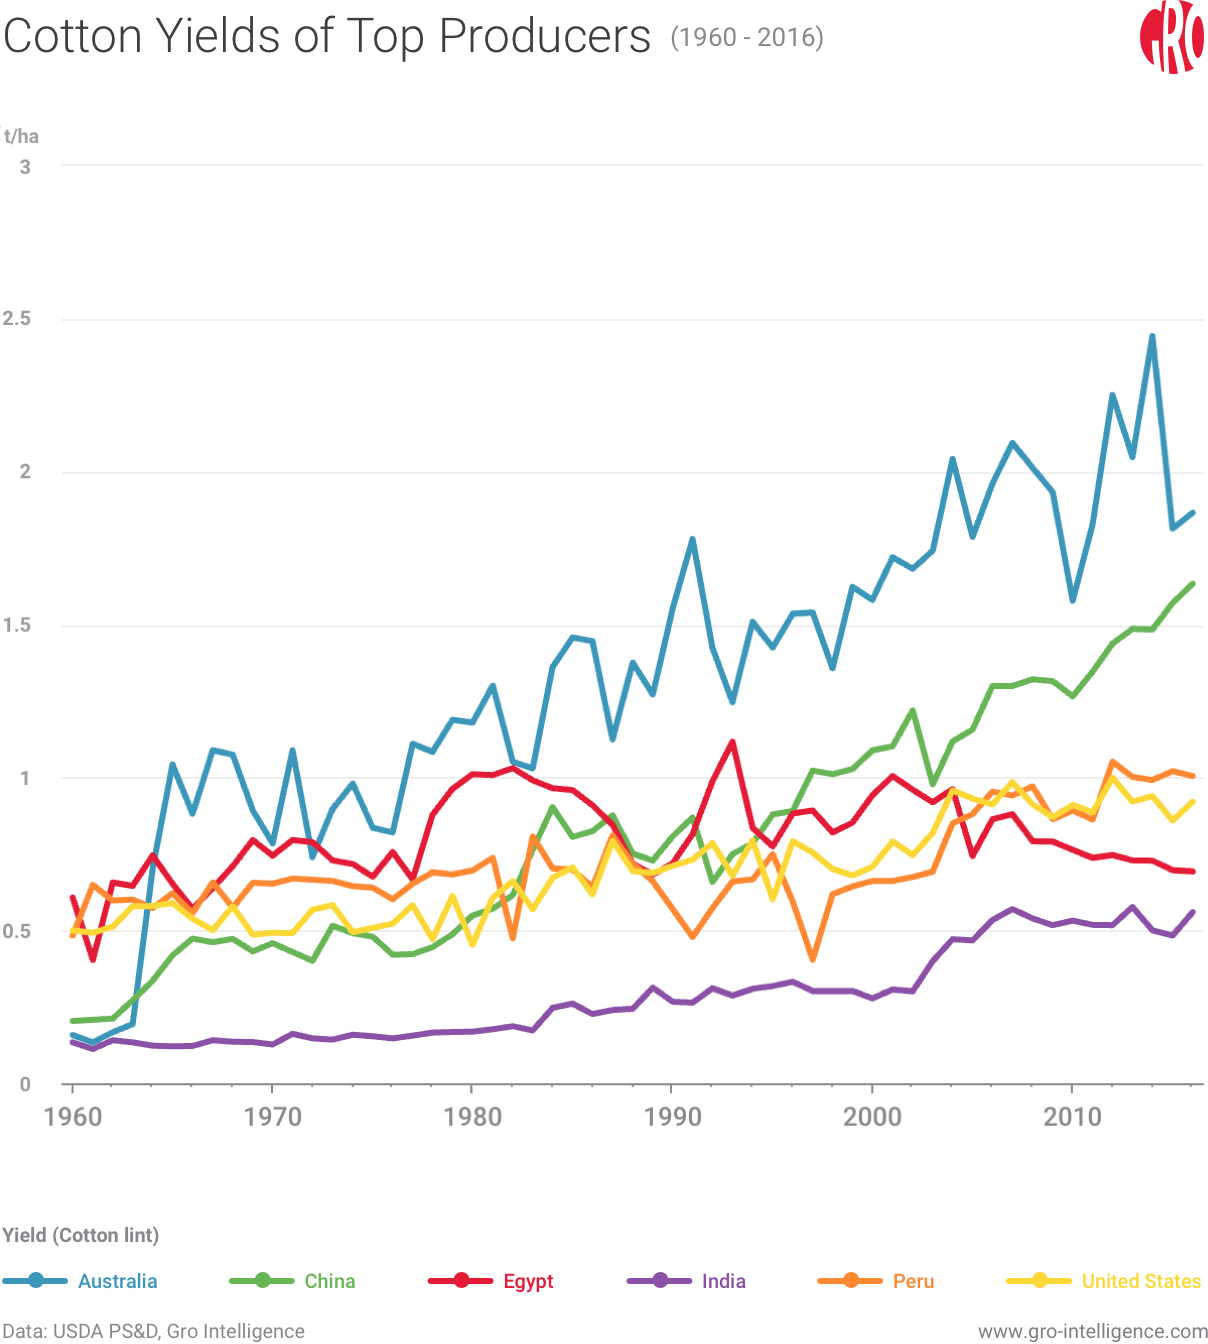 Cotton Yields of Top Producers